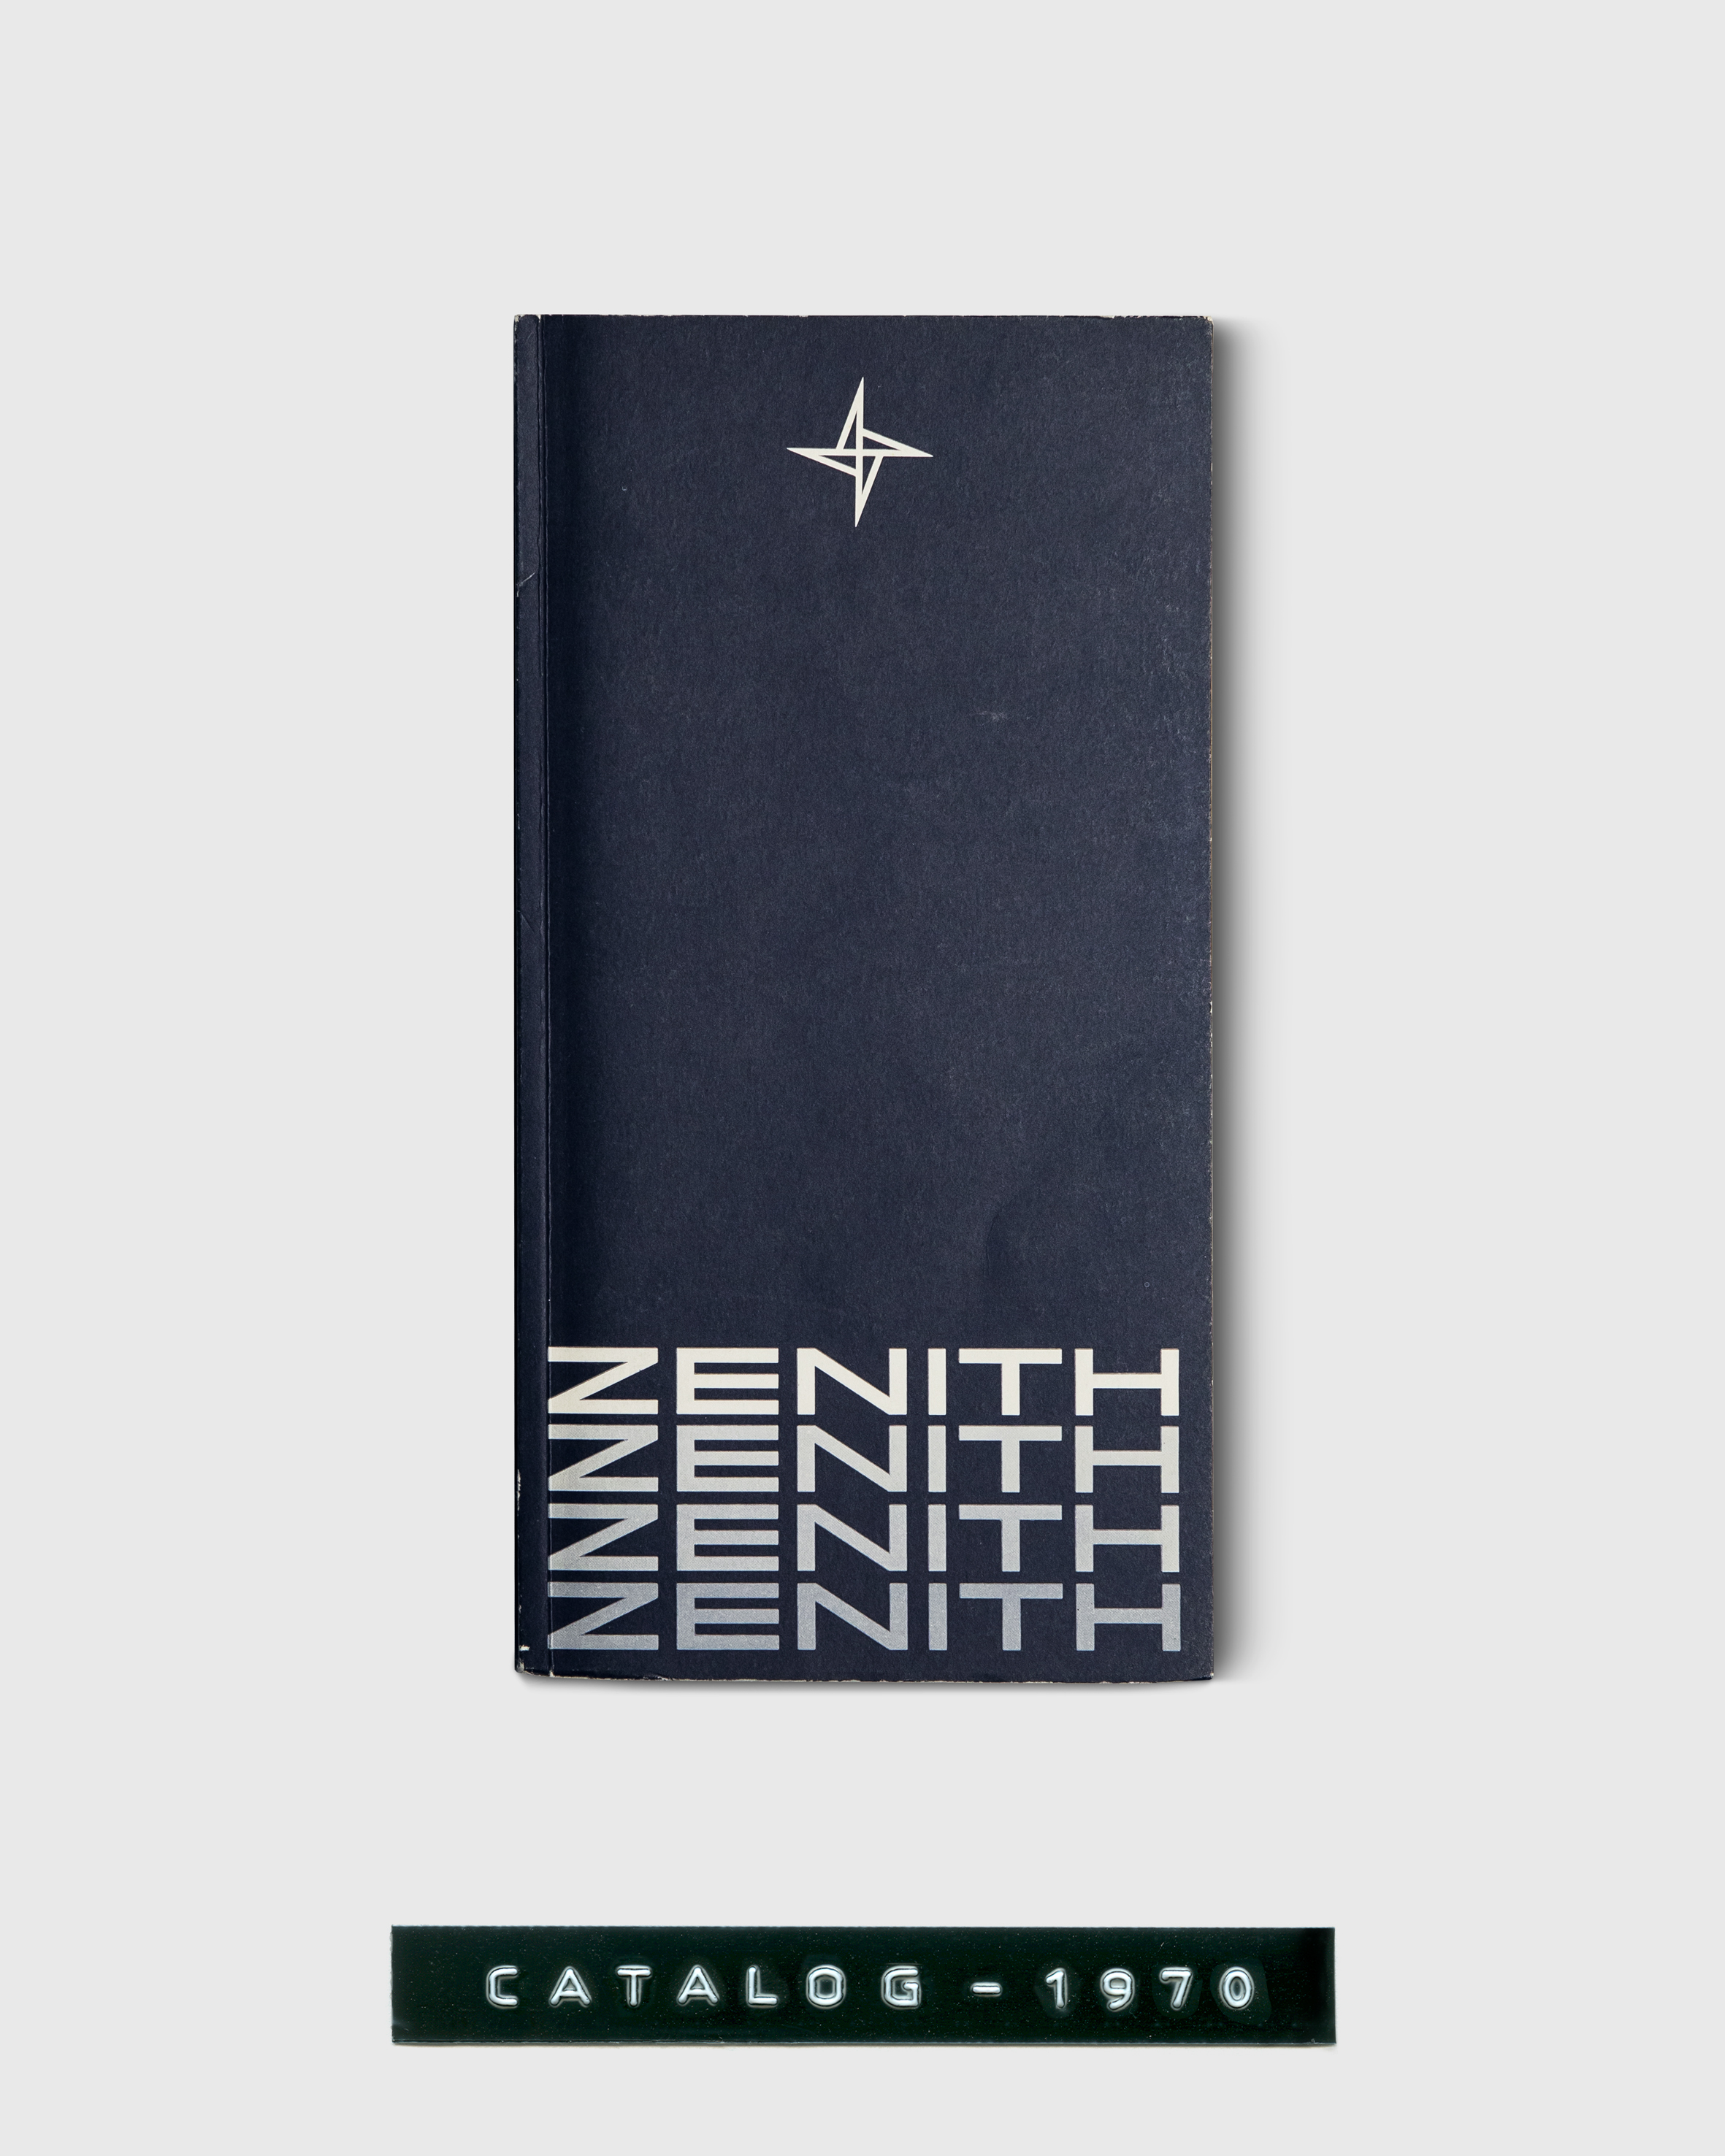 ZENITH_ICONS_ARCHIVES (1)